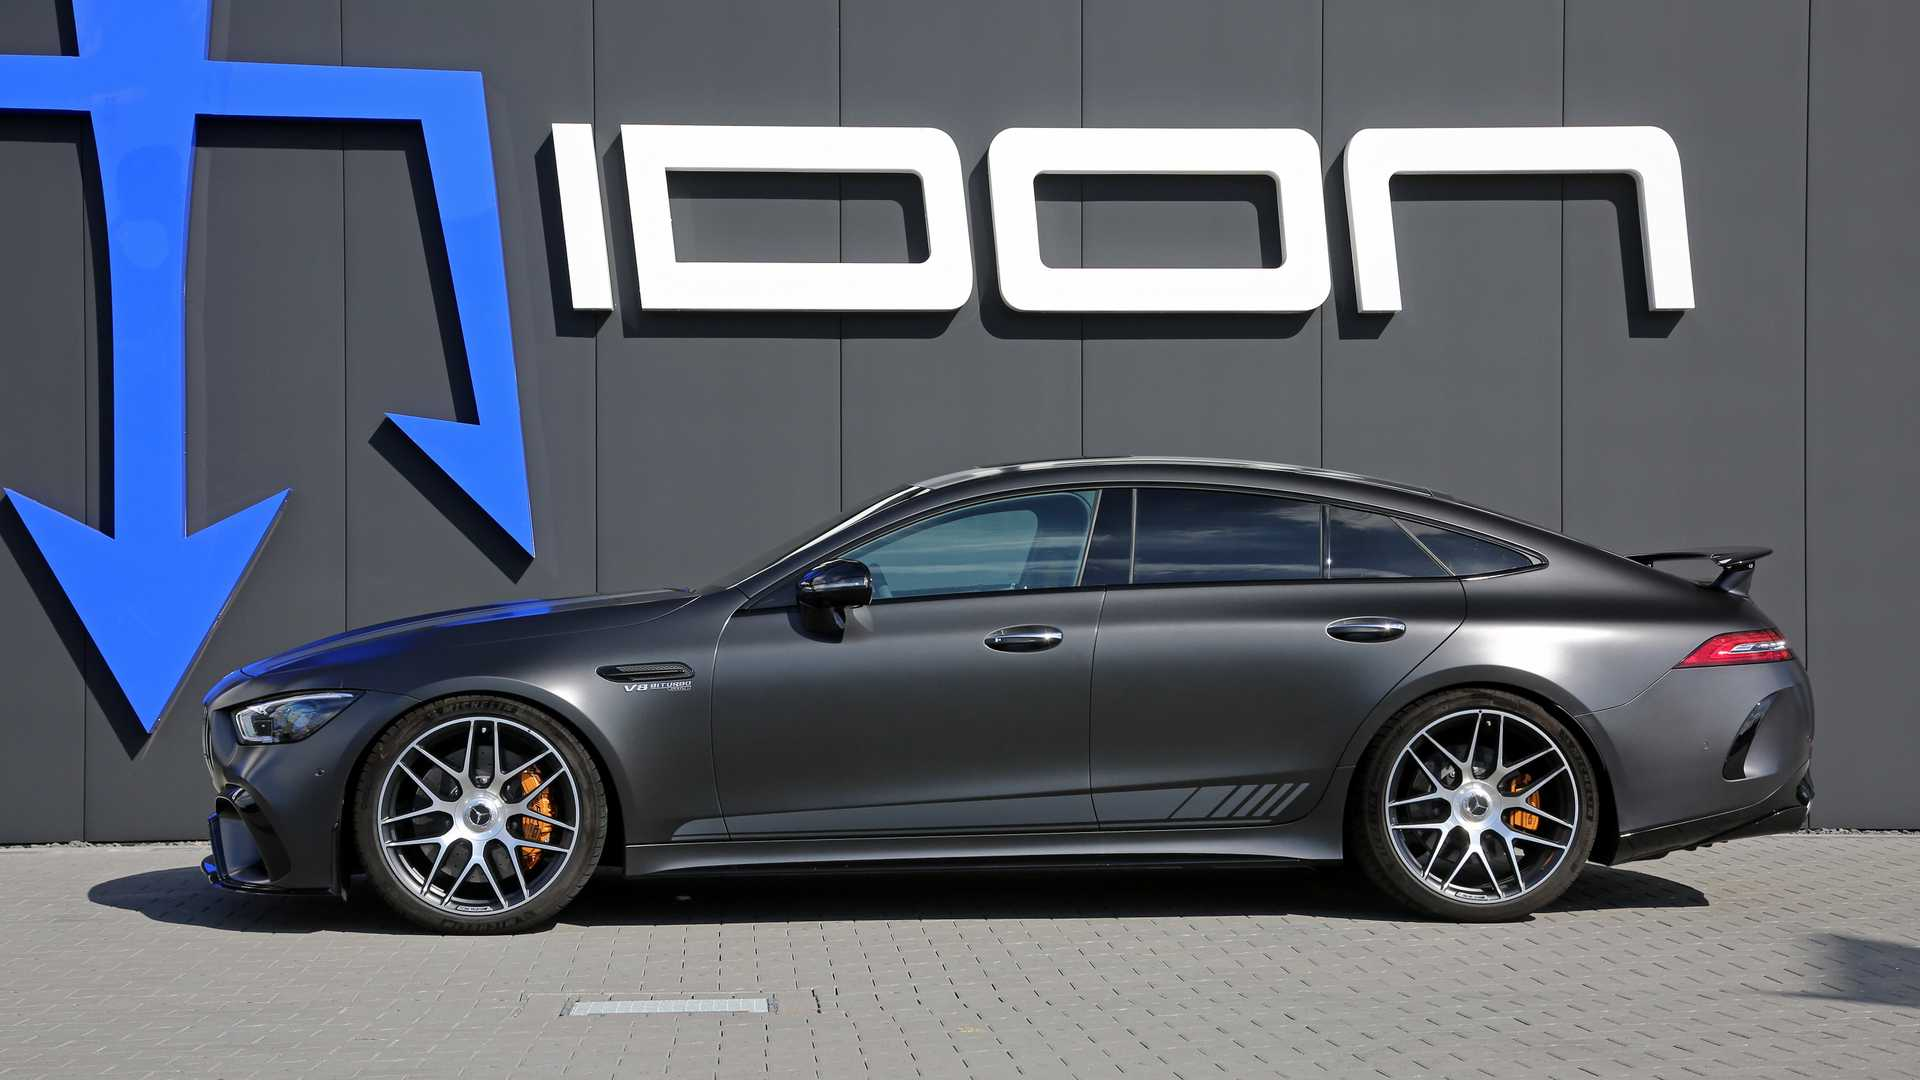 318c37bc-mercedes-amg-gt-63-s-tuning-posaidon-3